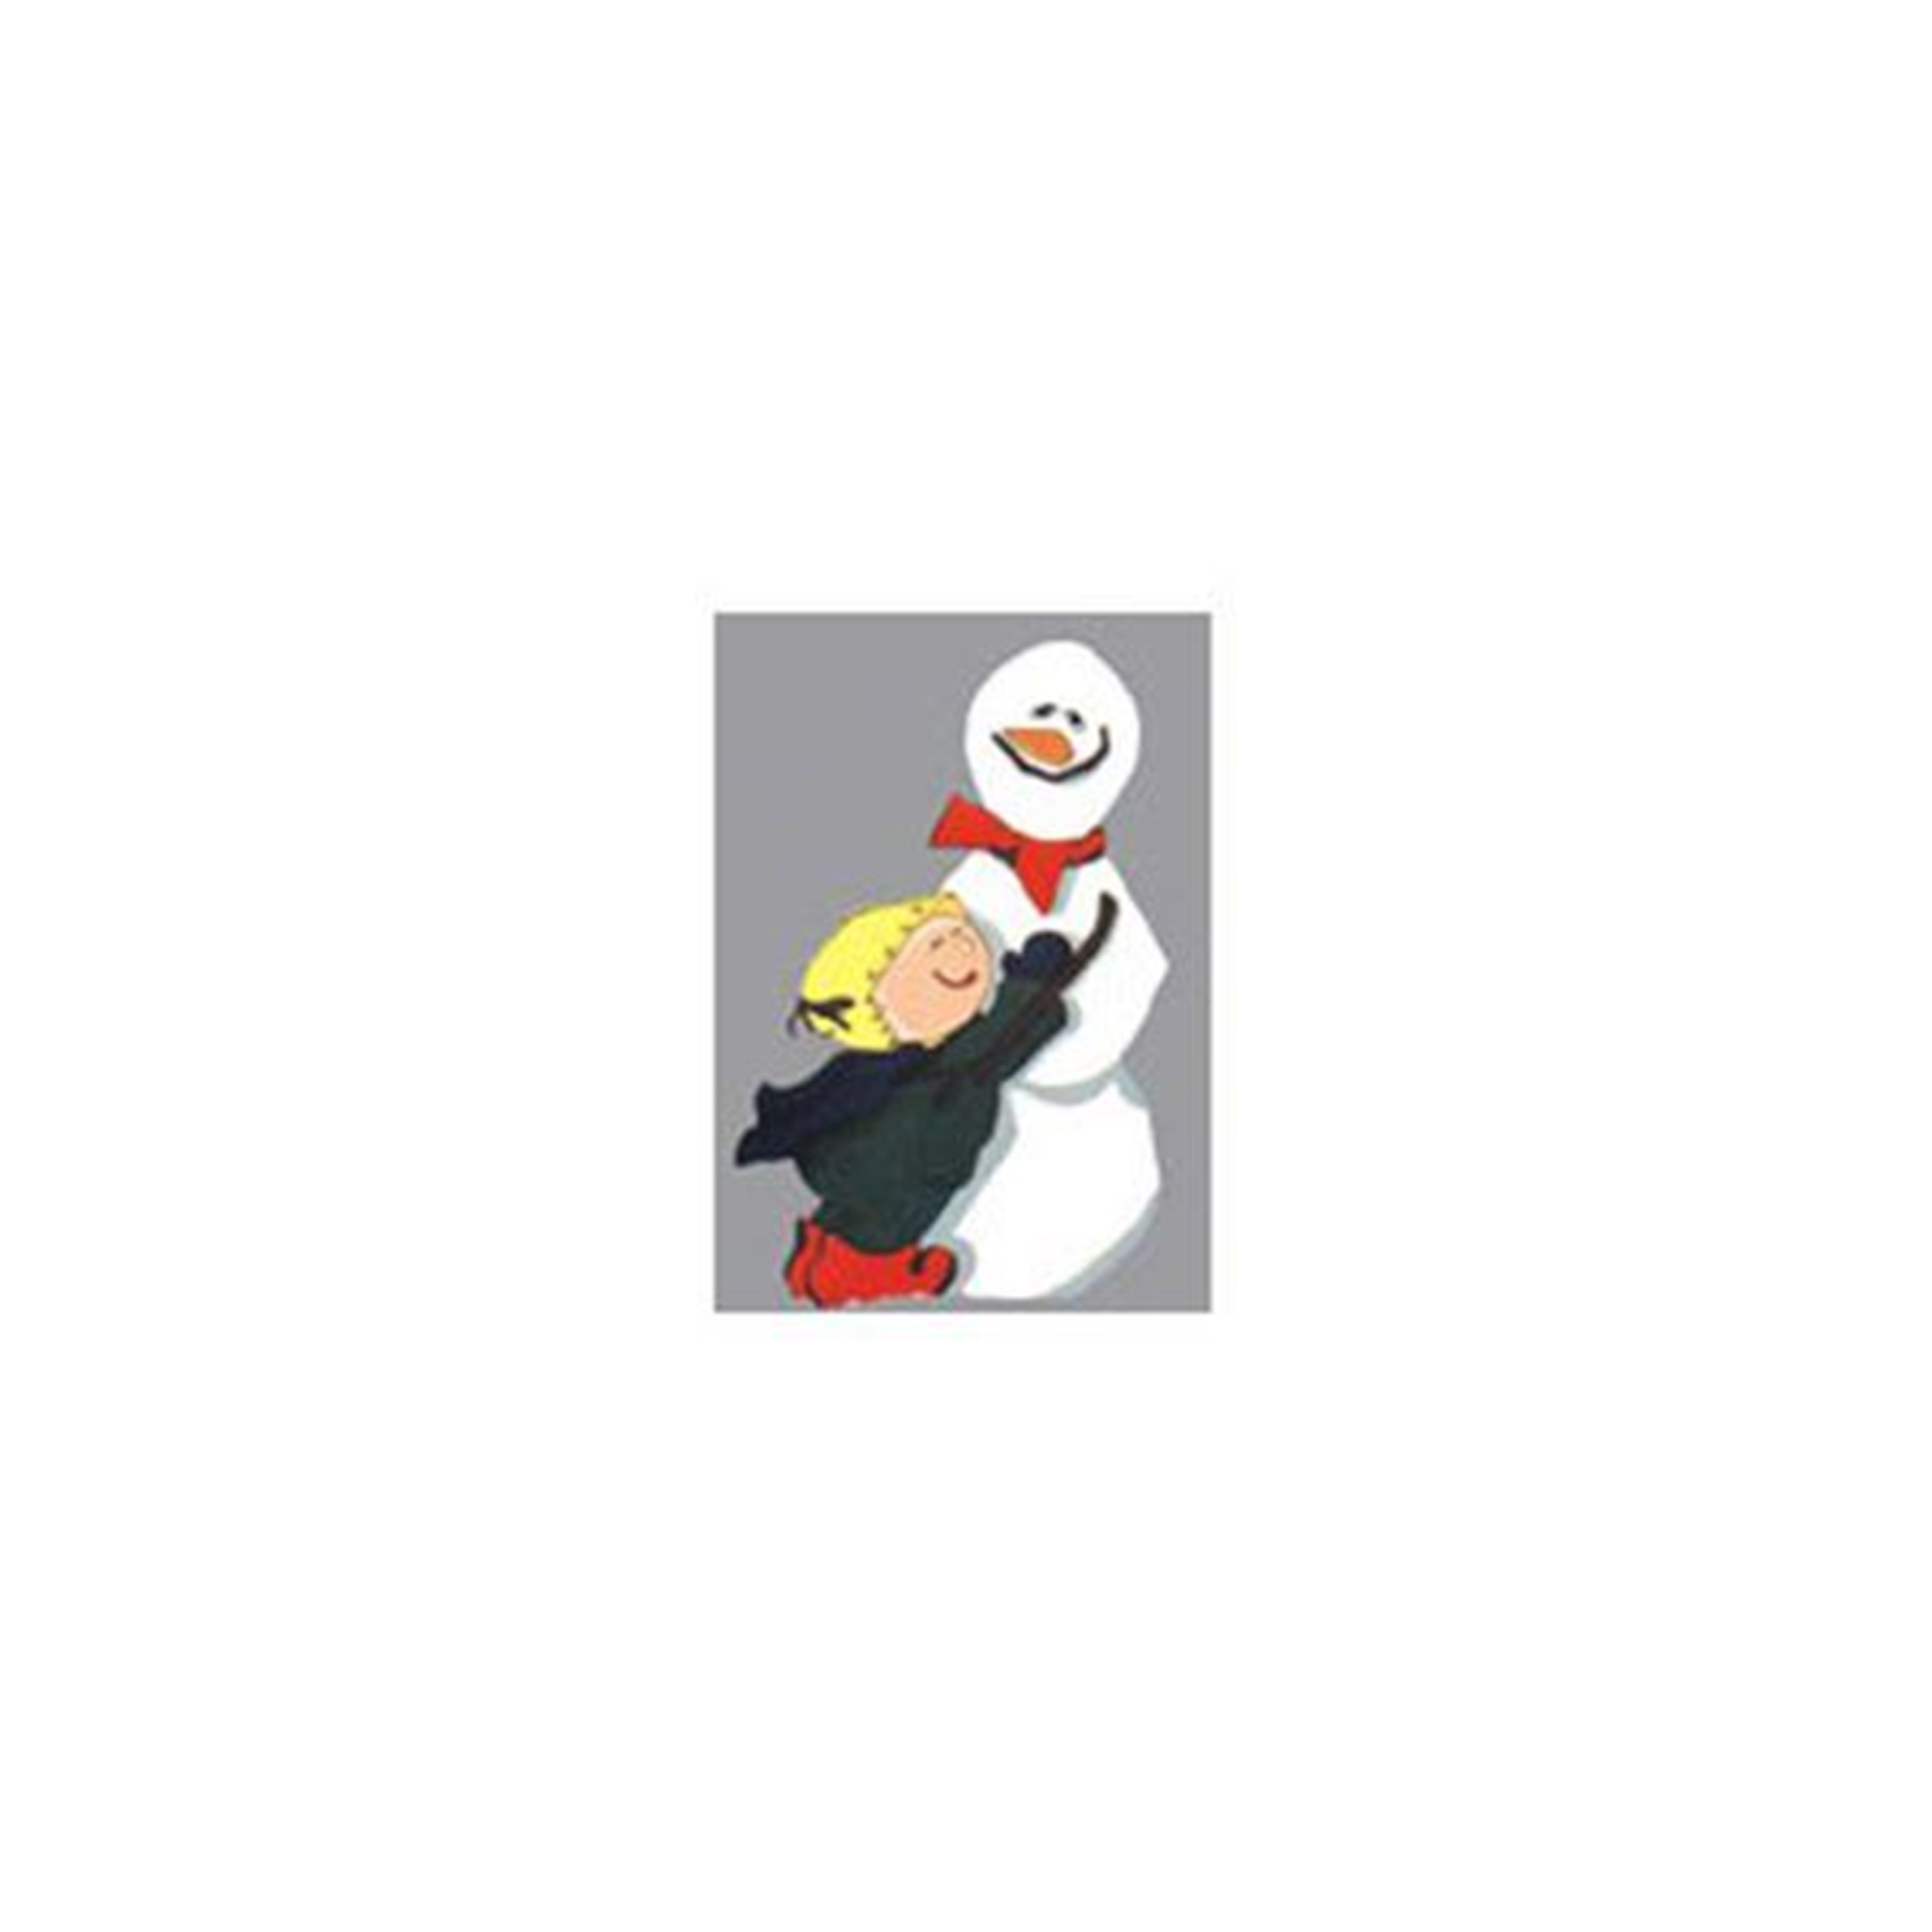 Woodworking Project Paper Plan to Build Snowman with Child